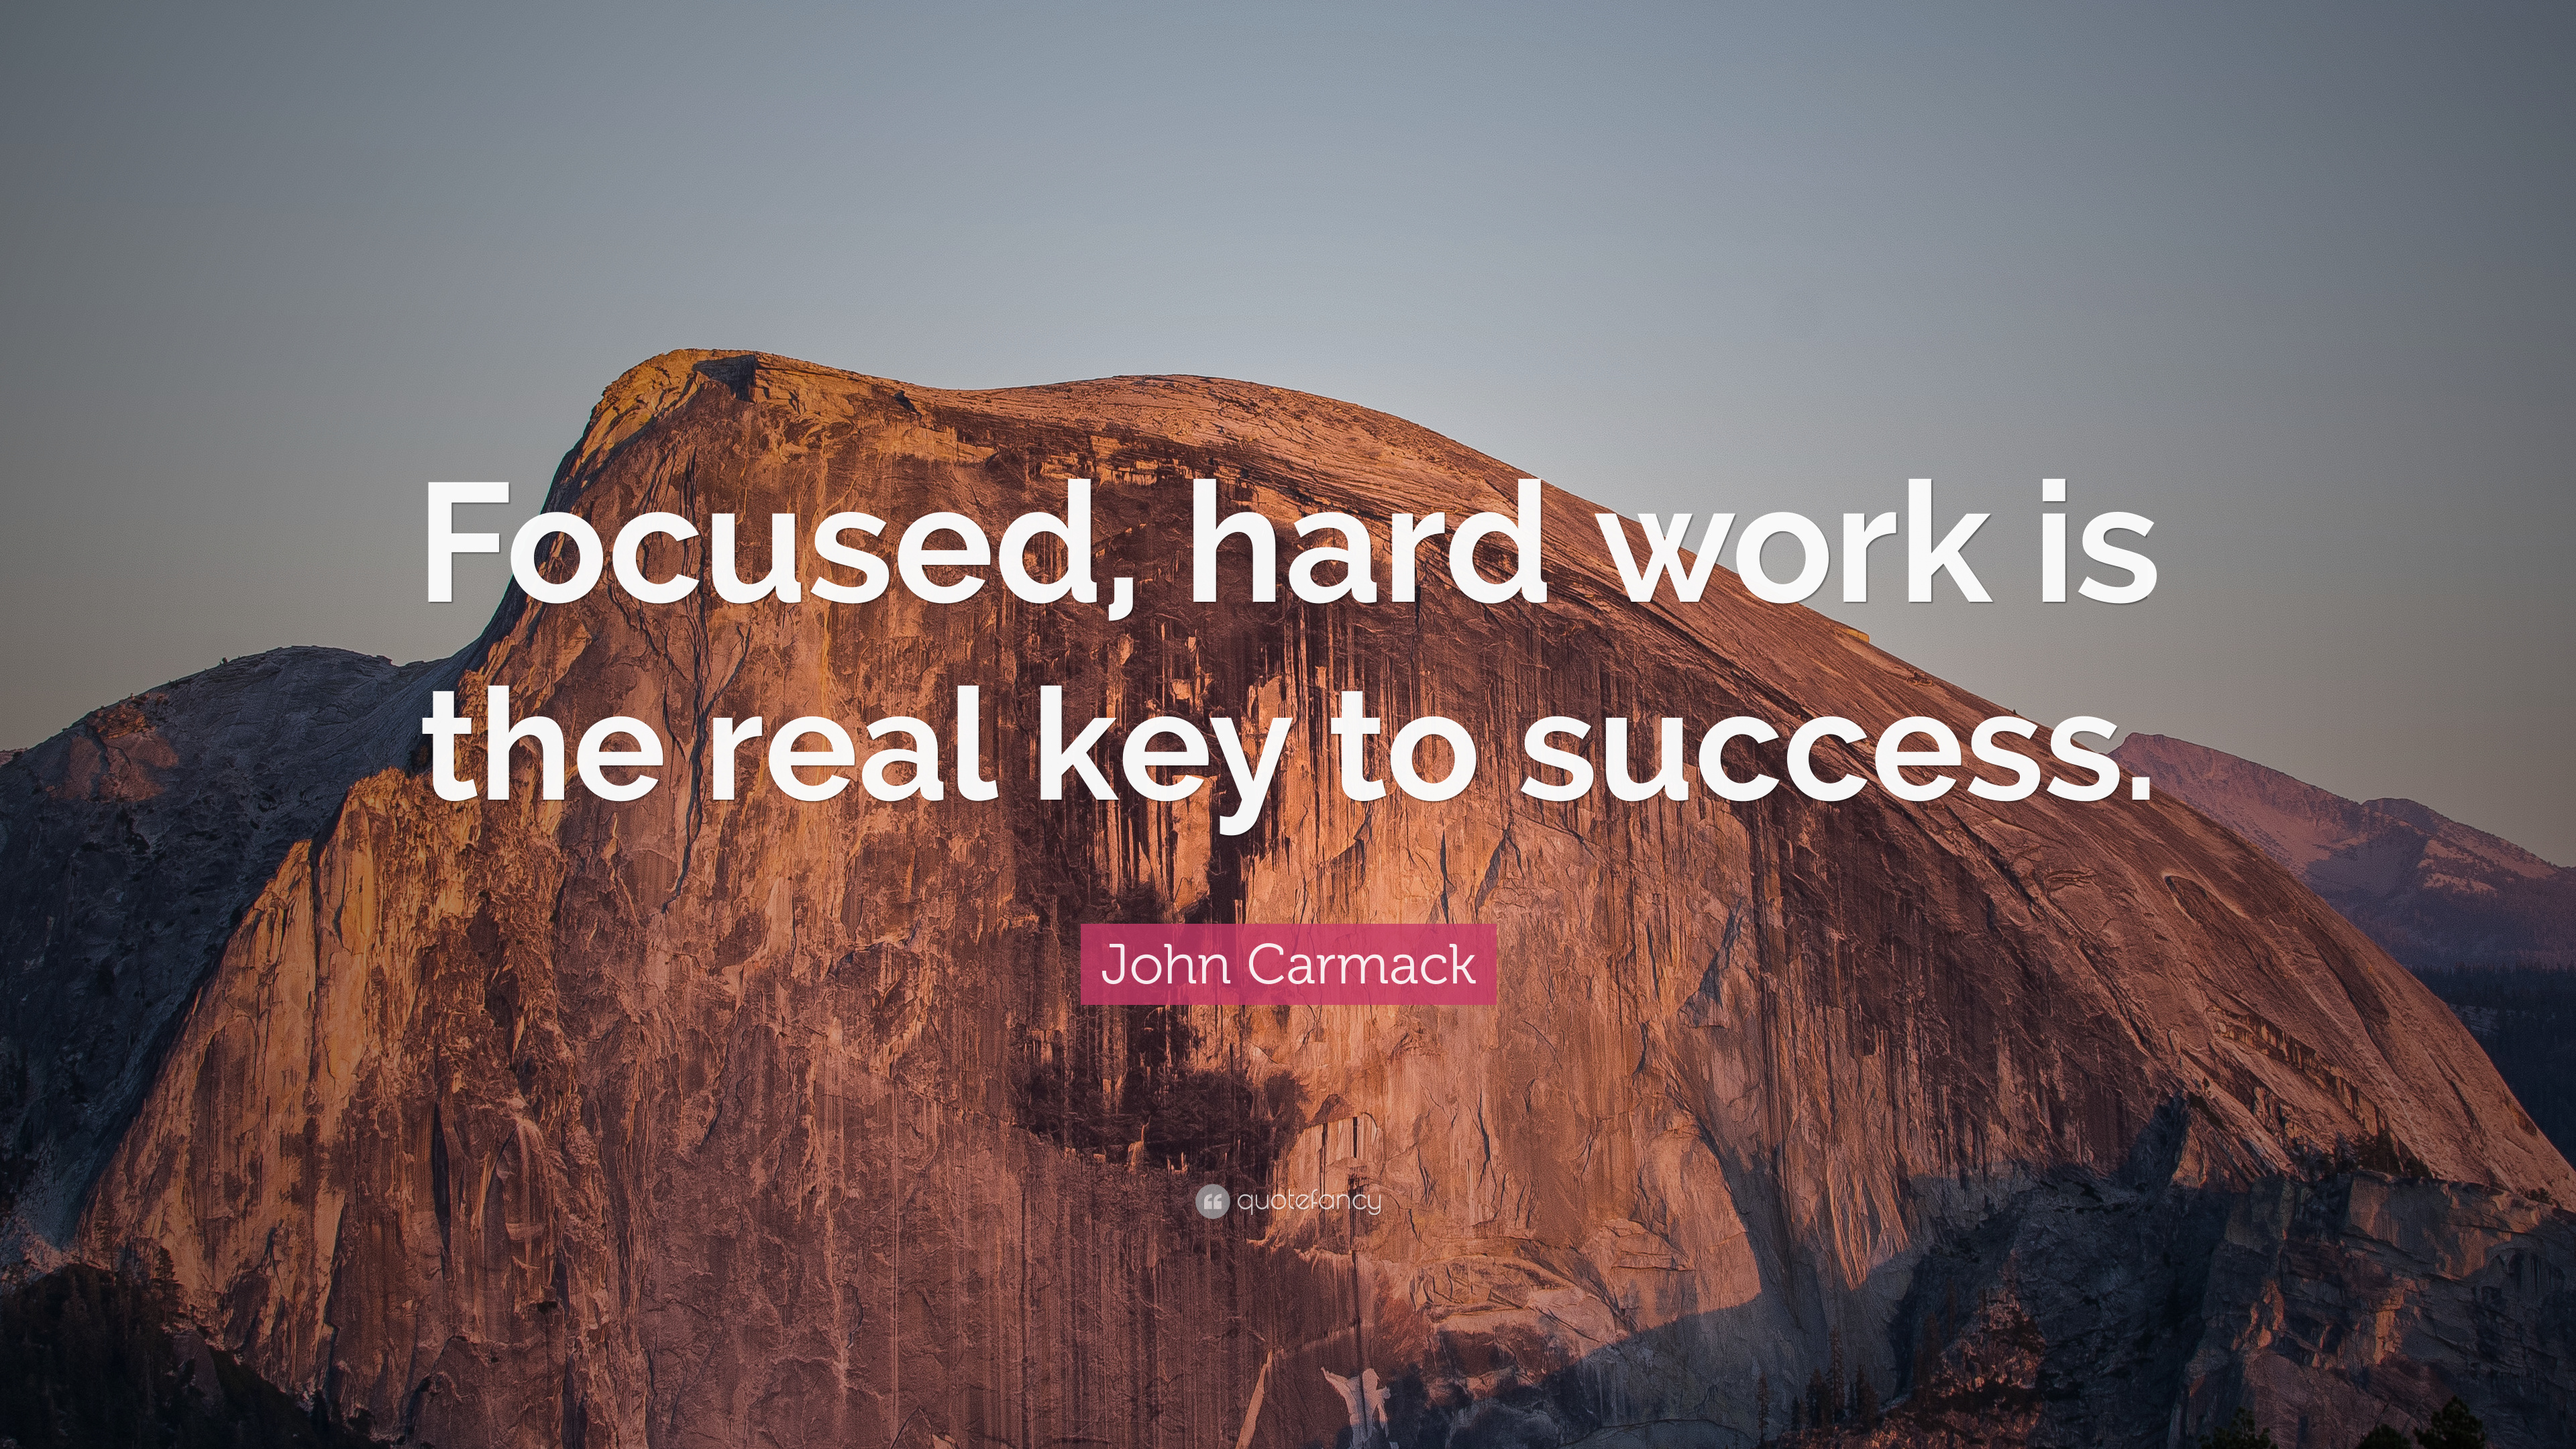 article on hard work is key to success The truth about hard work and entrepreneurial success april  still one more key component to the idea of entrepreneurial success via hard work.